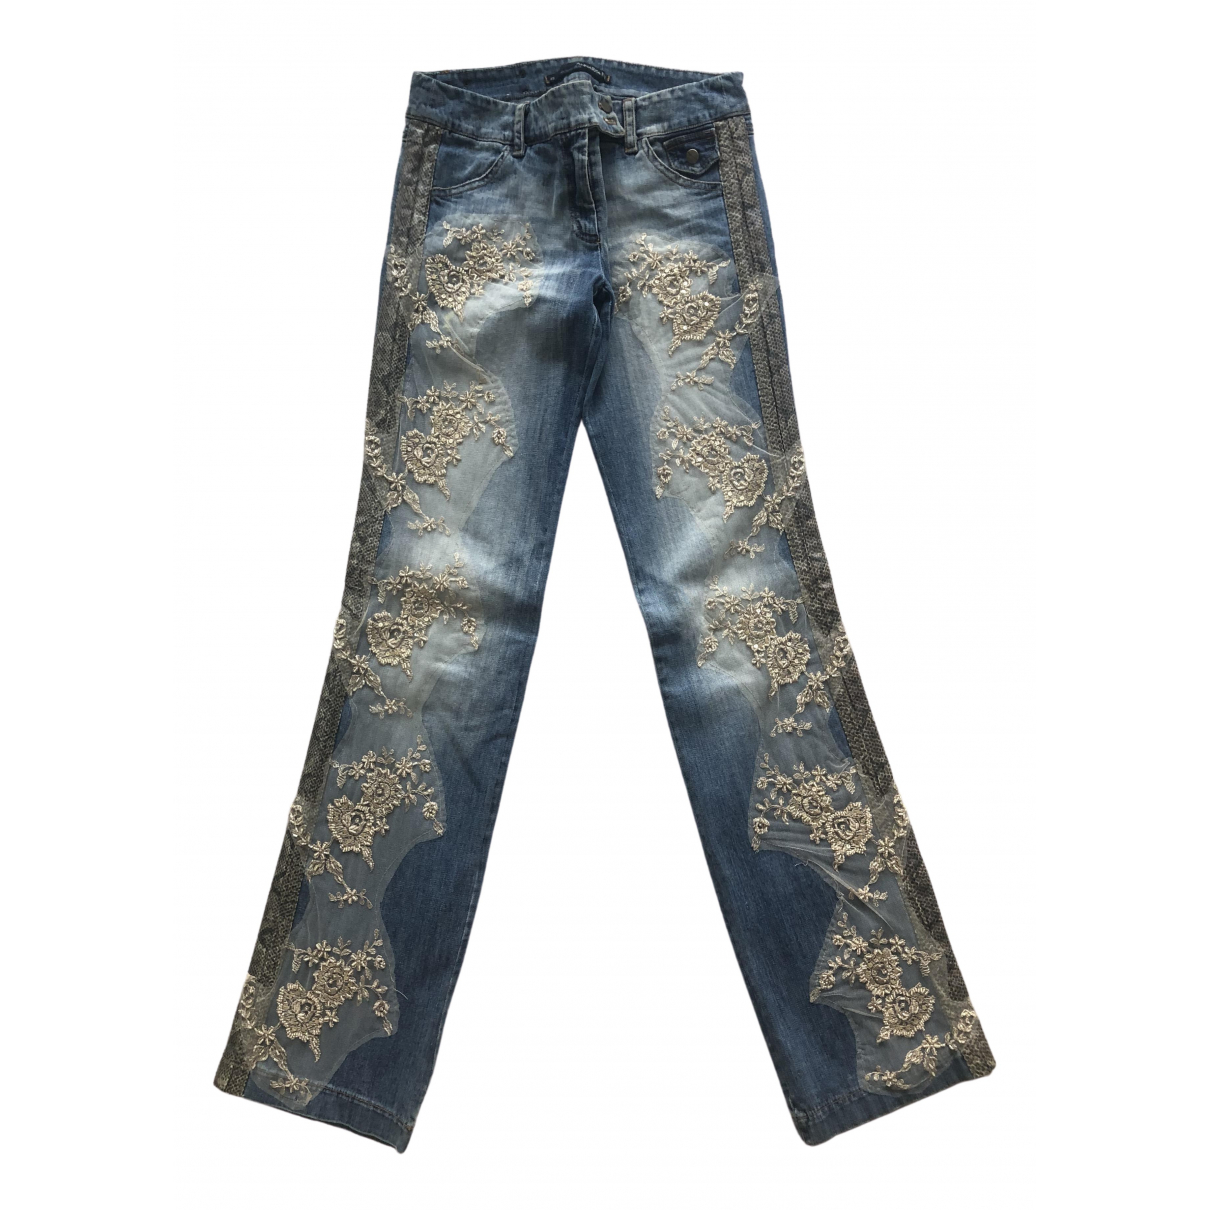 Pantalon recto Hippie Chic Non Signe / Unsigned